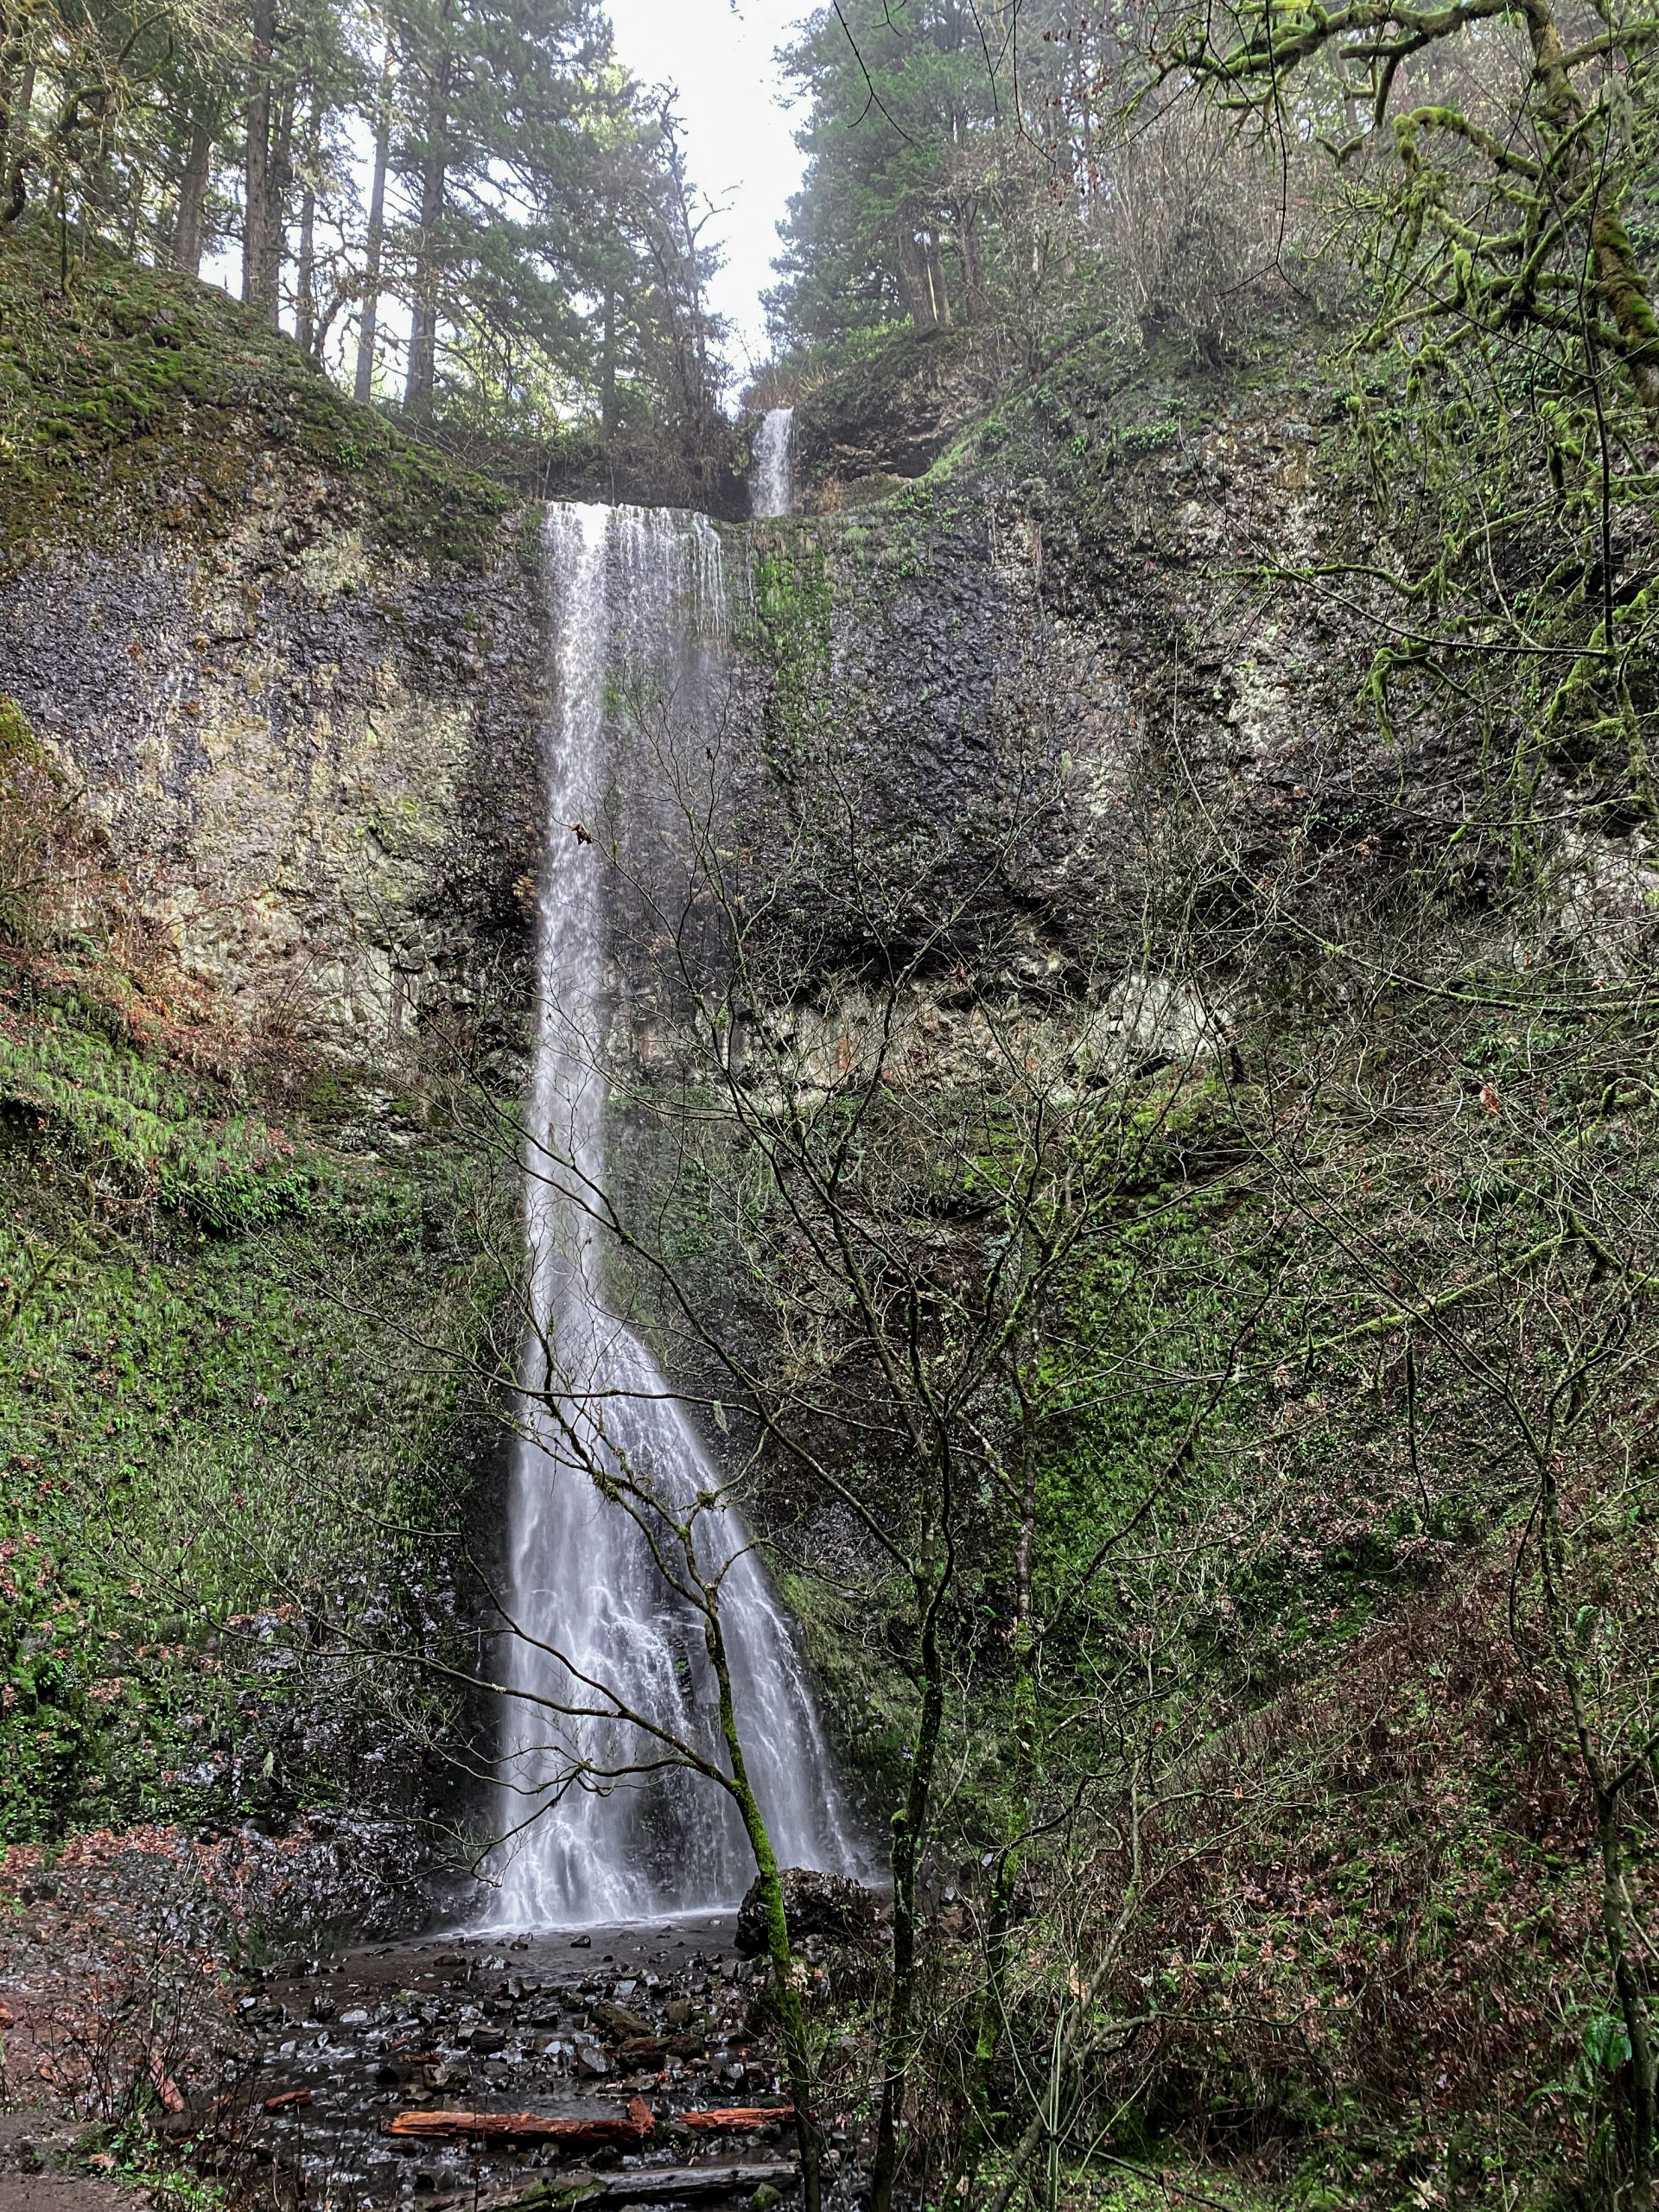 Picture of double waterfall in Silver Falls State Park